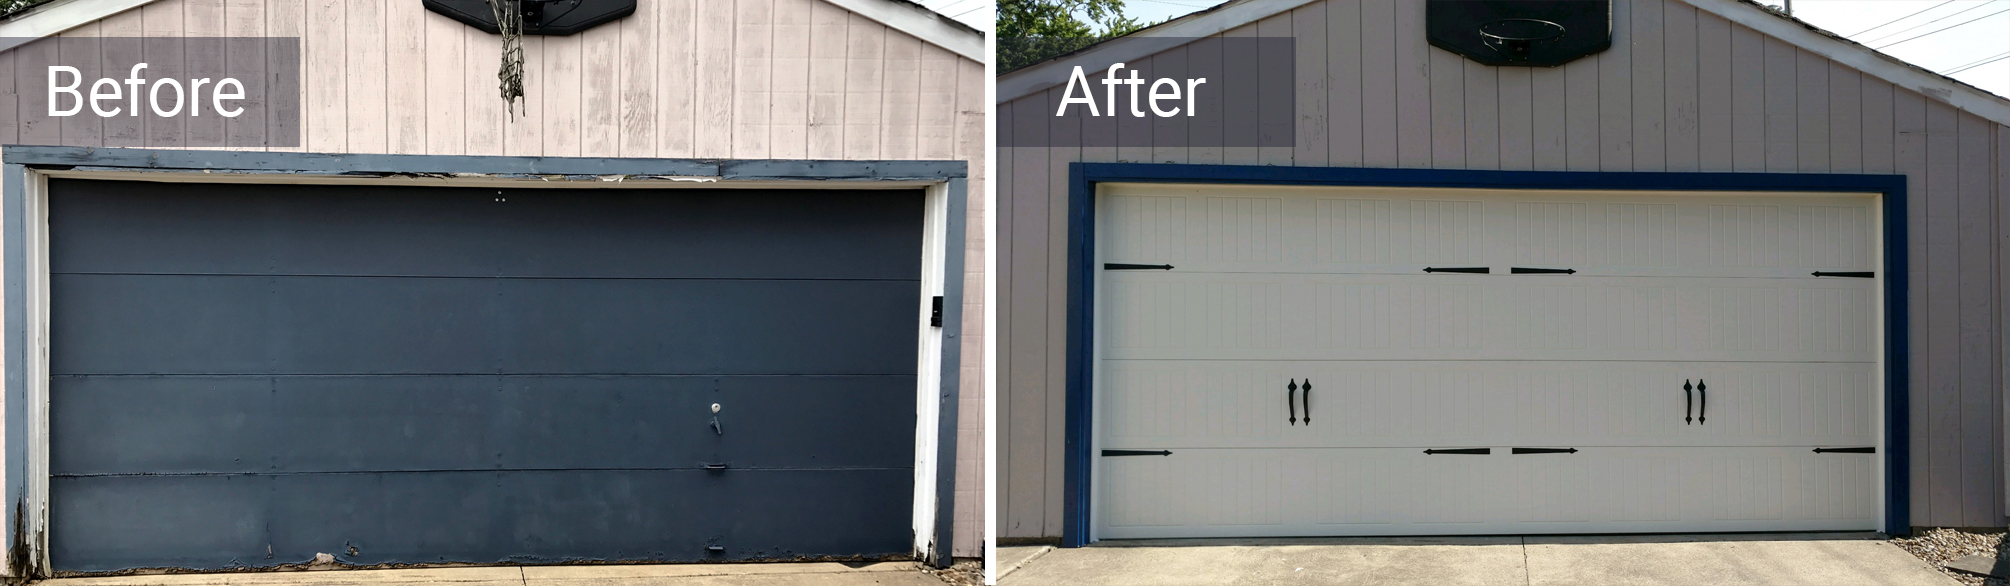 Superieur New Garage Door Installation